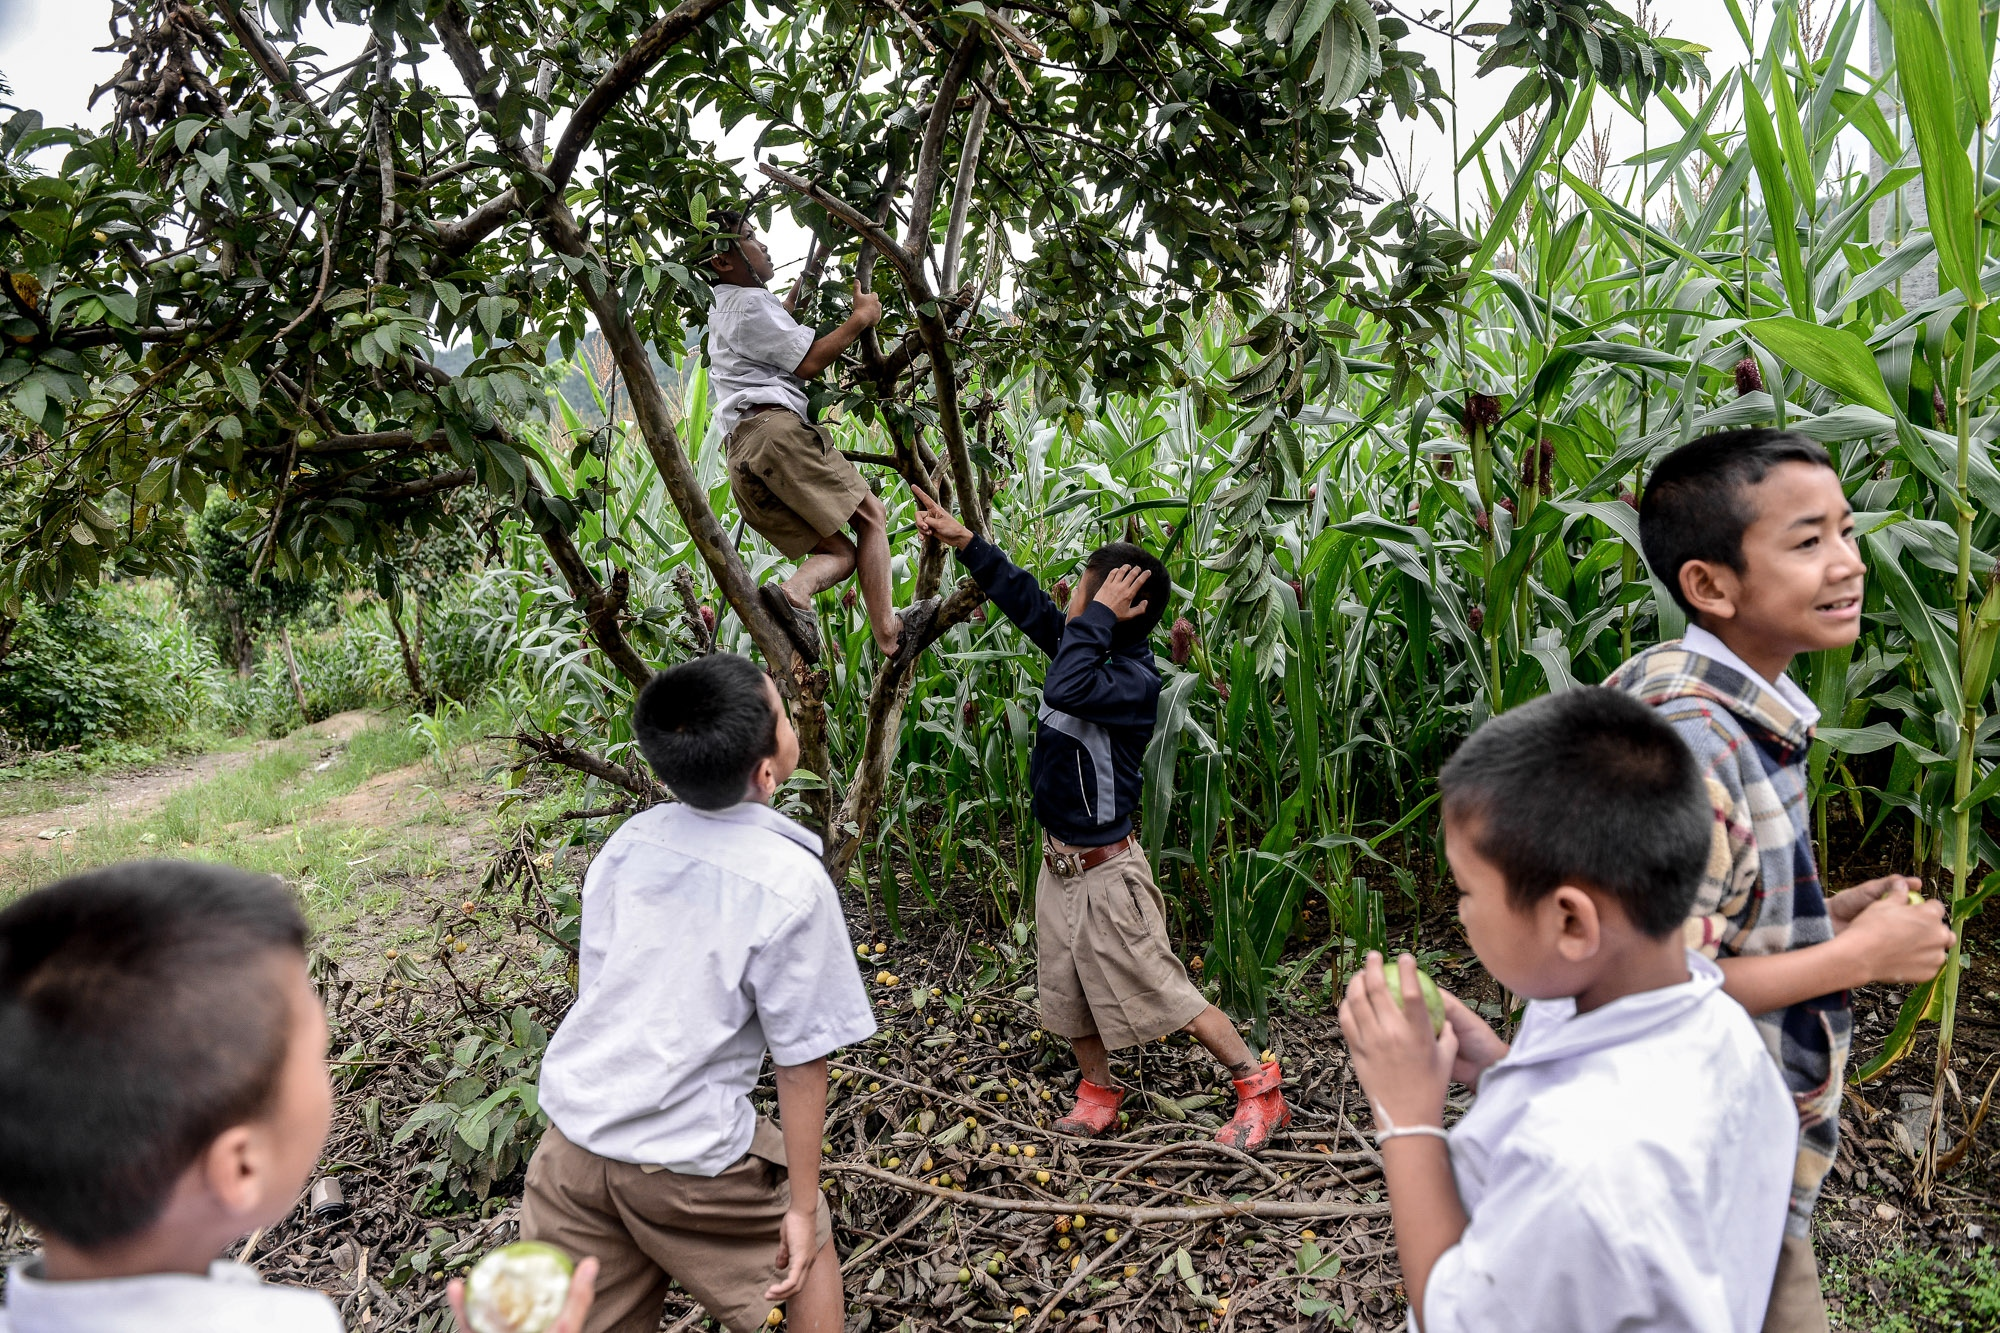 Kids are playing in the corn fields in the mountainous areas of Mae Chaem, Chiangmai, Thailand. The Incomes of their families mainly come from corn used in the animal feed business. Plantation on the slope of mountains predominantly commences from June and the following harvest continues from December towards the end of January. Stubble burning is a common practice widely used for land clearance prior to the forthcoming plantation season. This practice will not only encourage soil deterioration but also a heavy smog and potentially toxic air pollution.